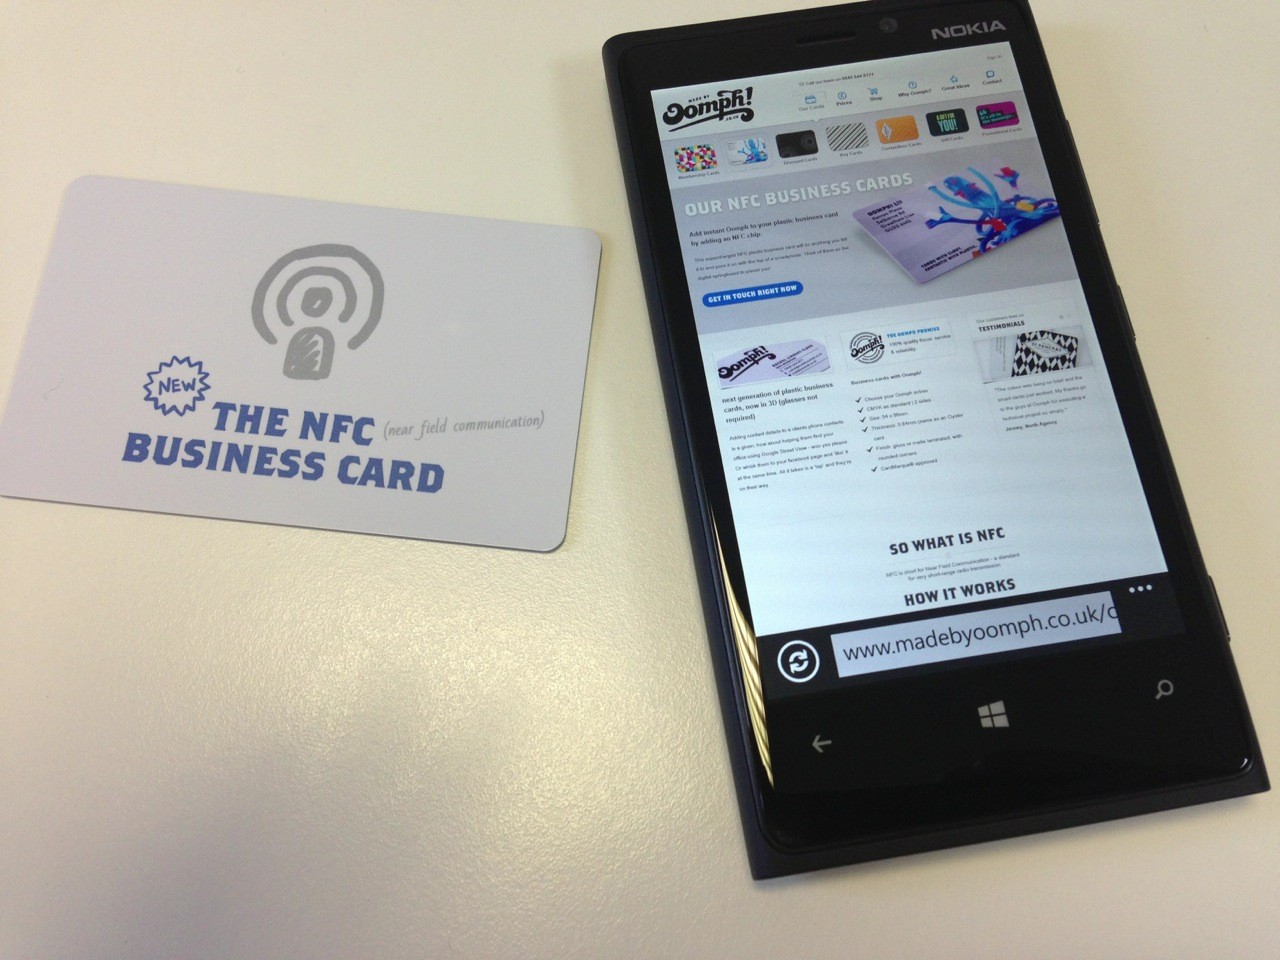 Plastic NFC Business Cards with Oomph